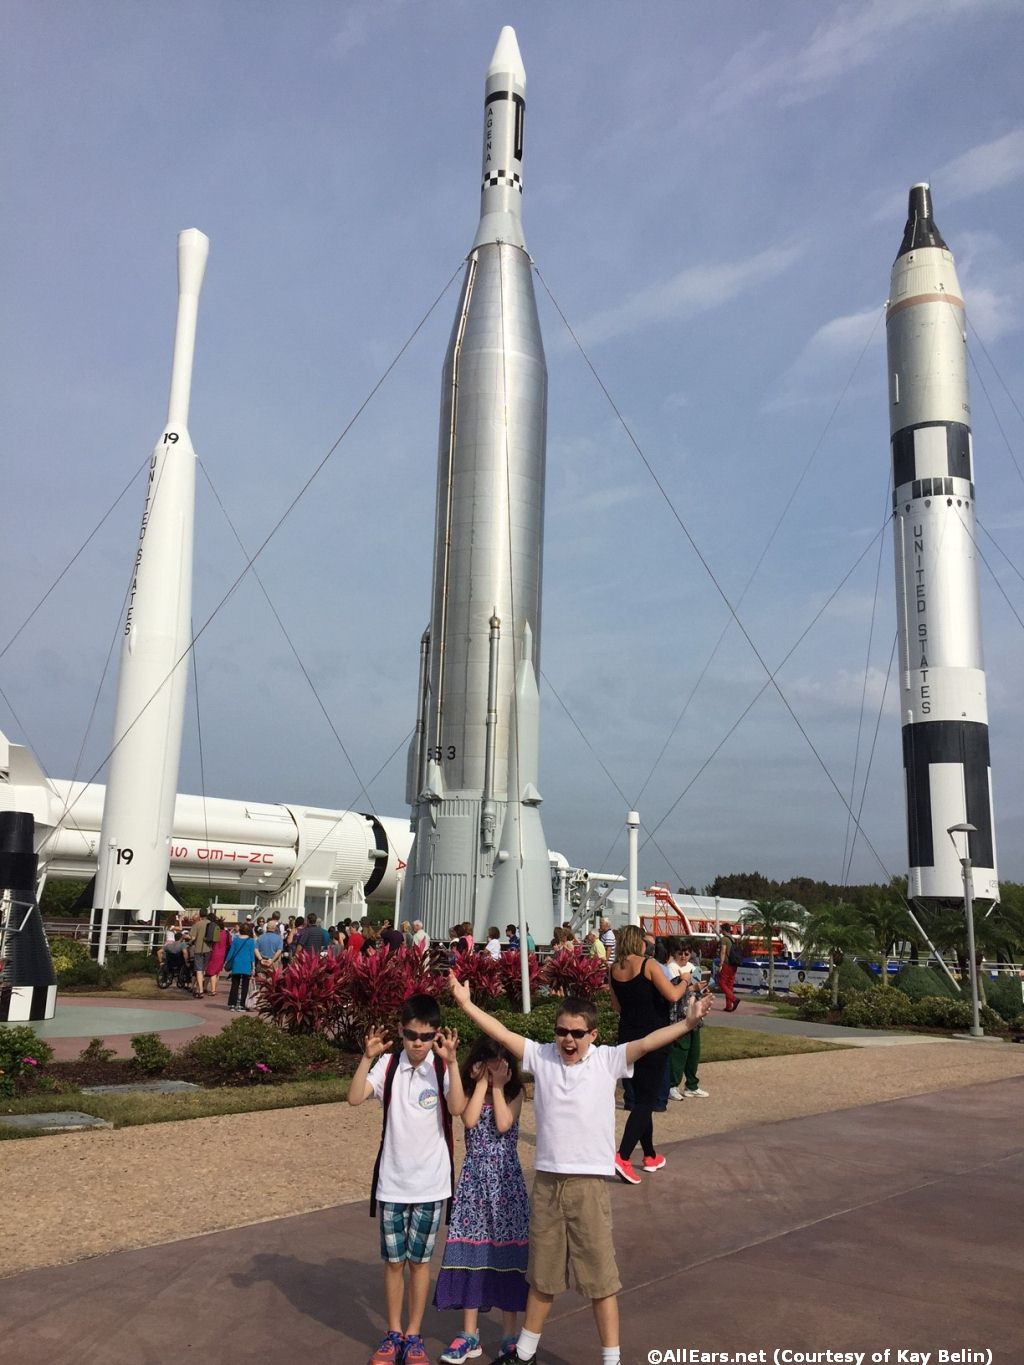 Guest Blogger >> Visiting Kennedy Space Center - Multi-Generational Family Visit (All Ears® Guest Blog)